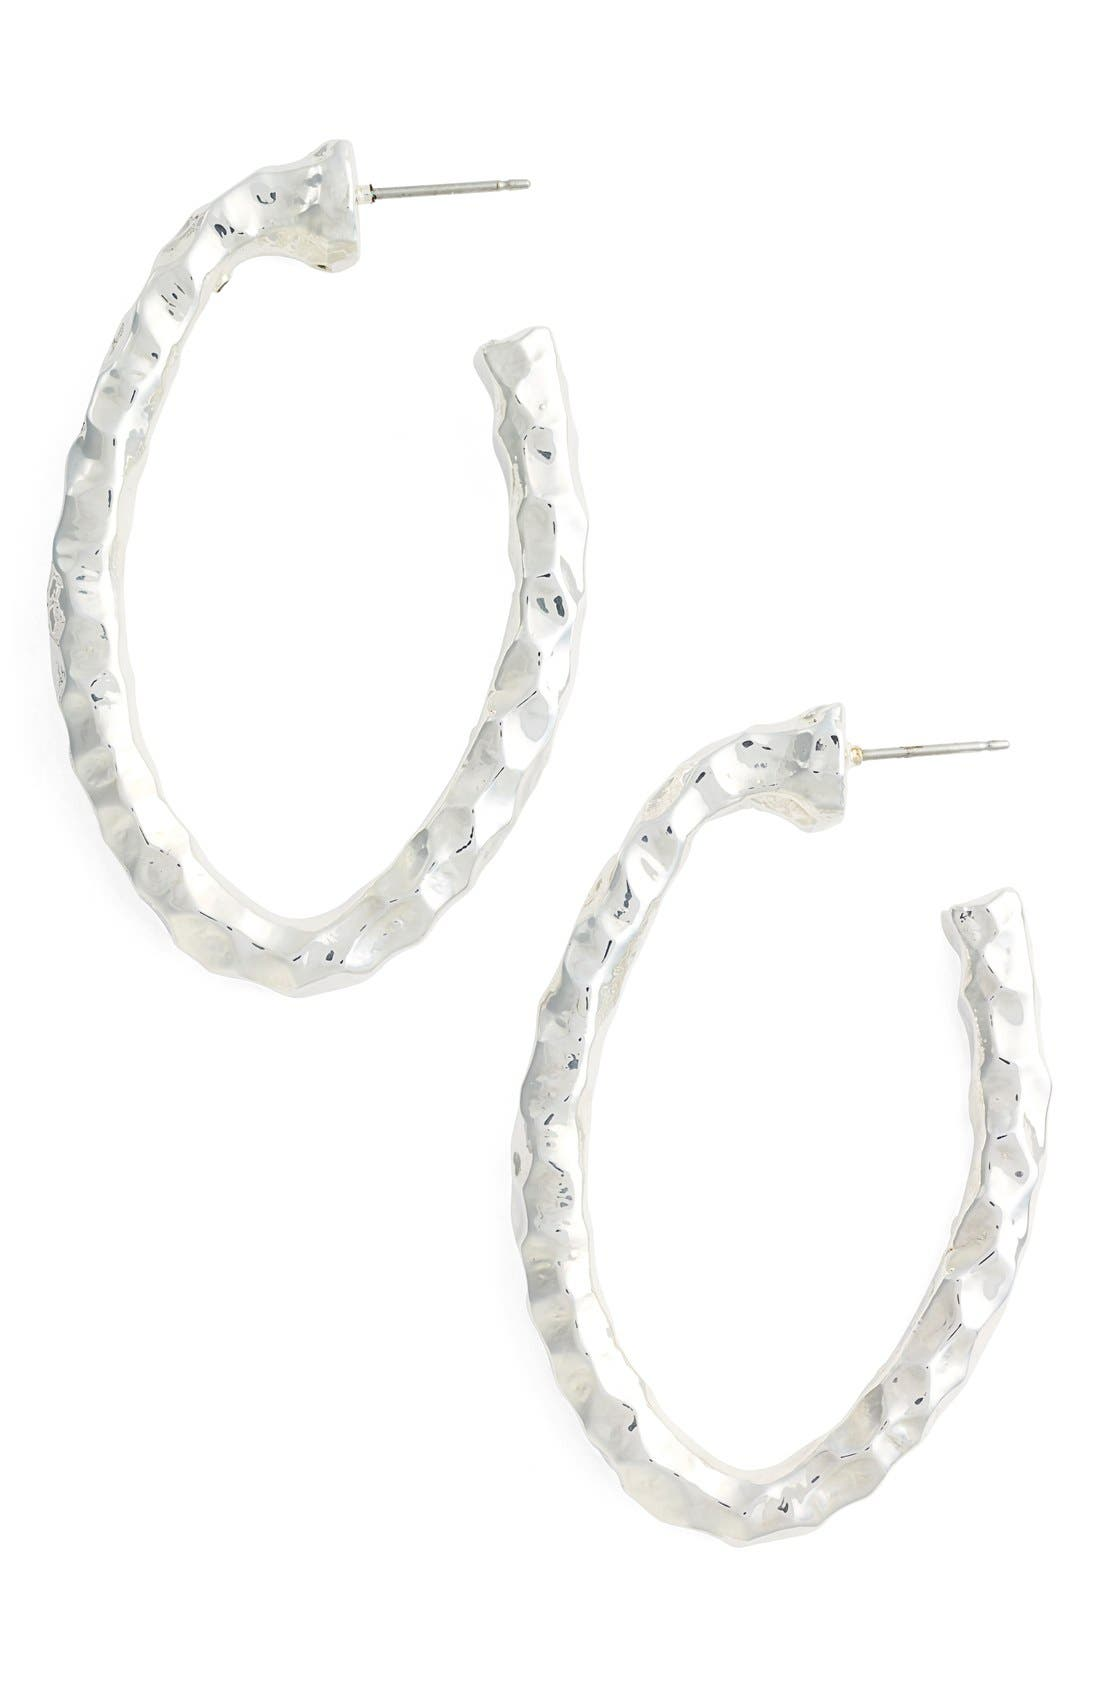 Hammered Hoop Earrings,                             Main thumbnail 1, color,                             Silver